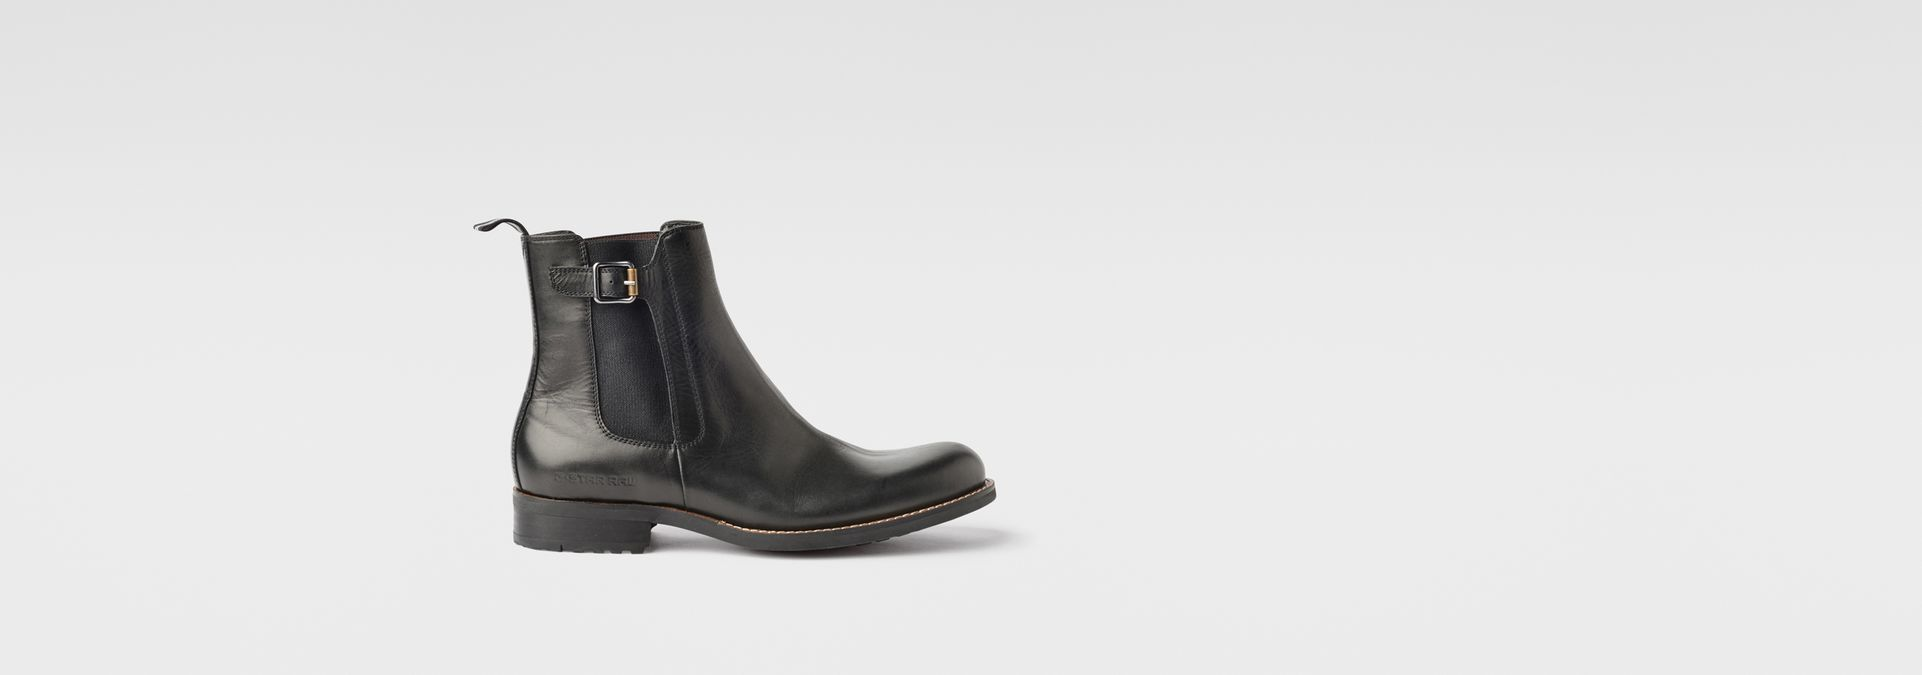 892ad0a47cc17 Manor Cavalry Ankle   Black   G-Star Soldes Hommes   G-Star RAW®